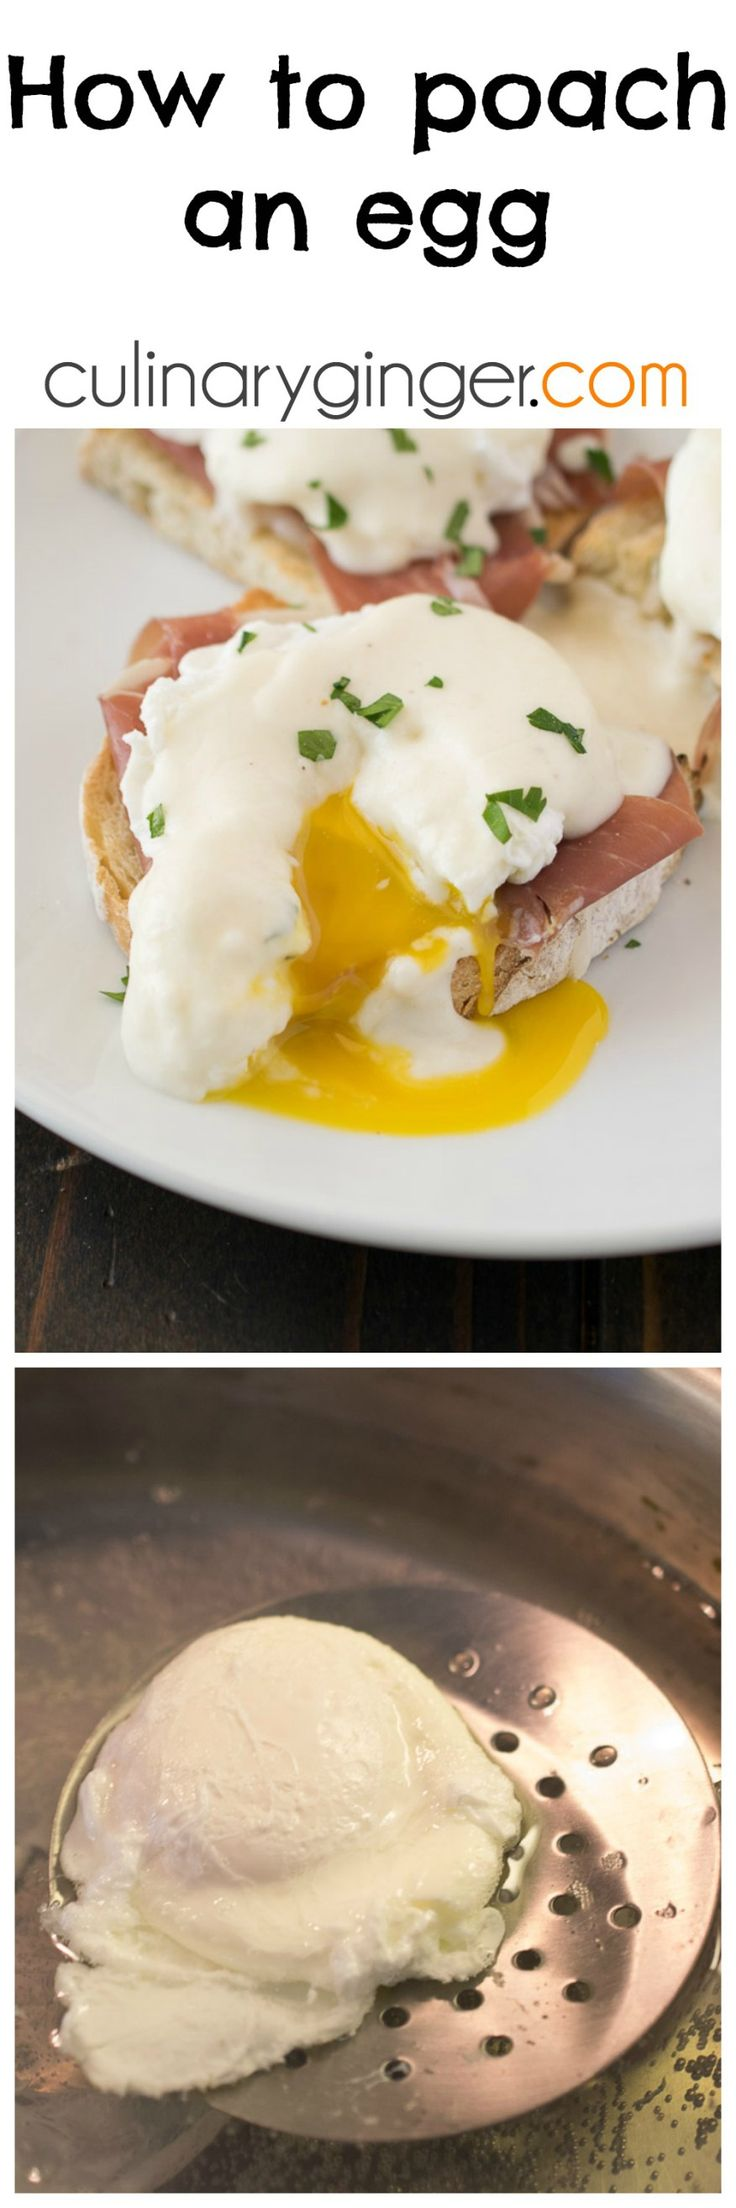 1000+ ideas about Boiling An Egg on Pinterest | Perfect boiled egg ...